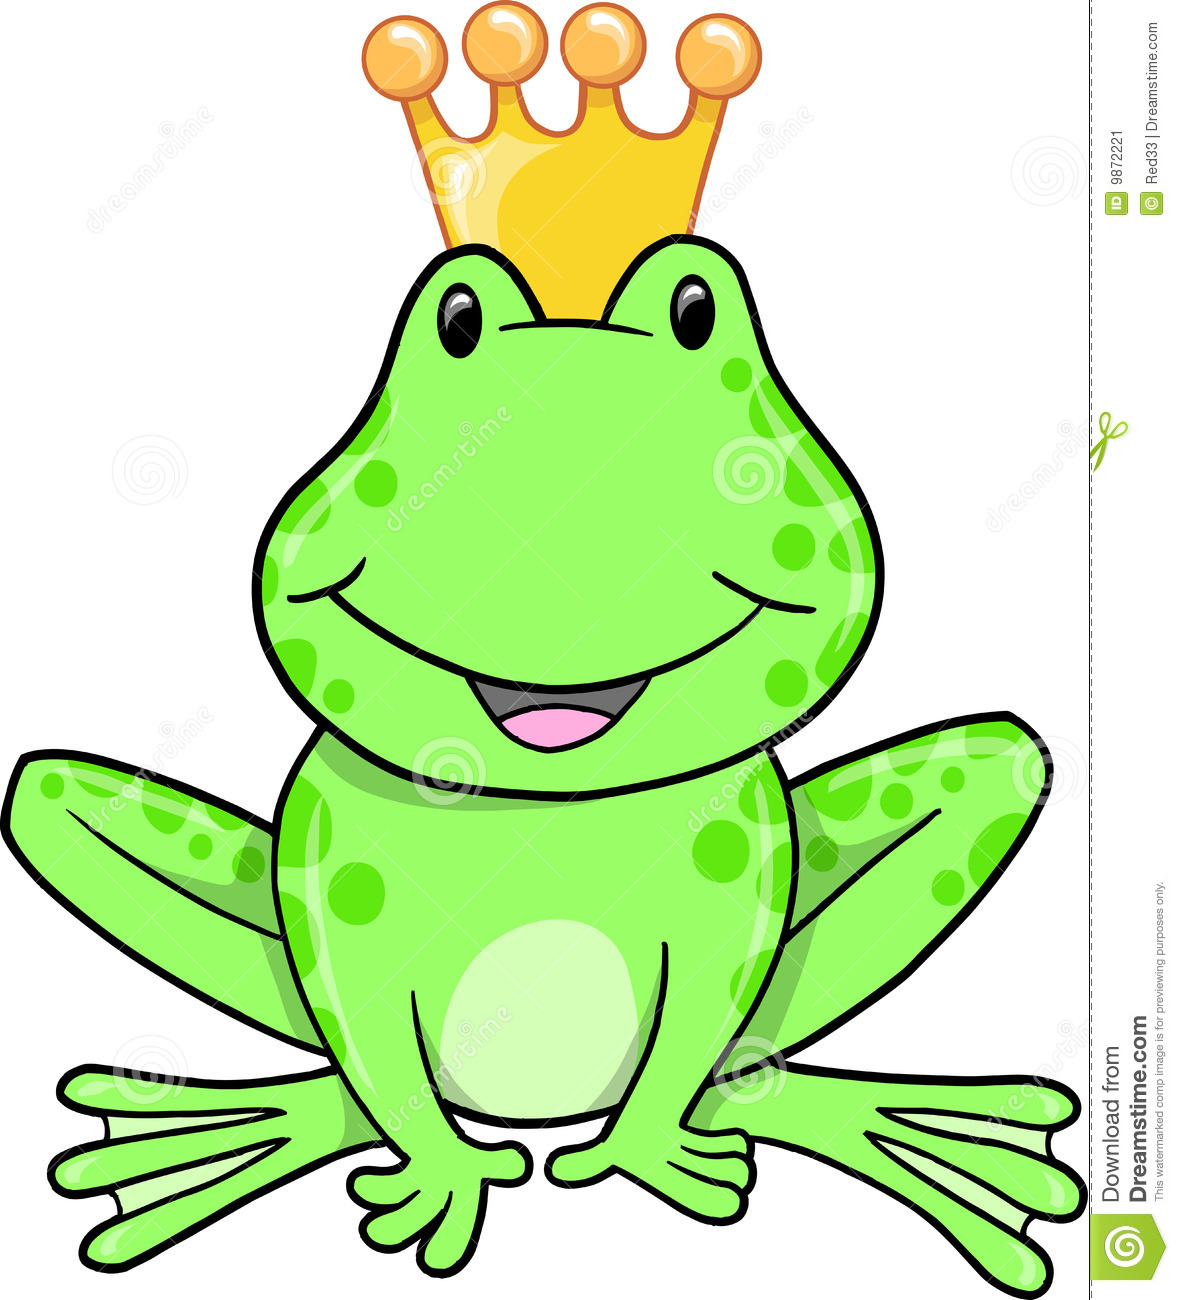 Toad clipart frog prince. Cliparts free download best